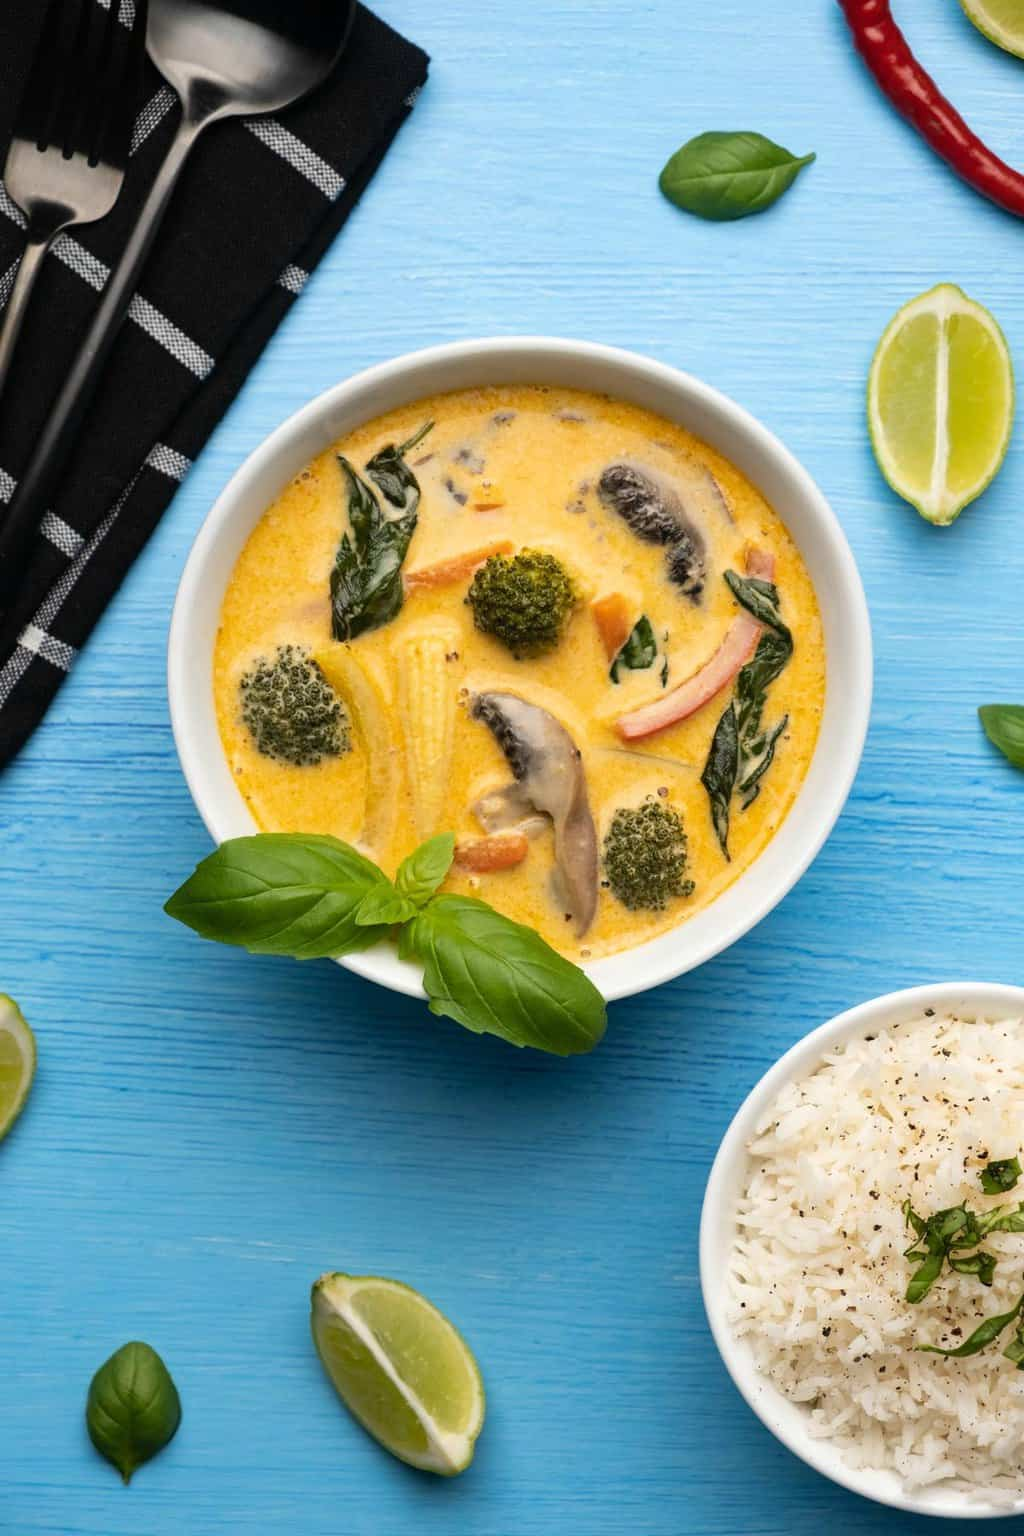 Vegan Thai red curry topped with fresh basil in a white bowl.